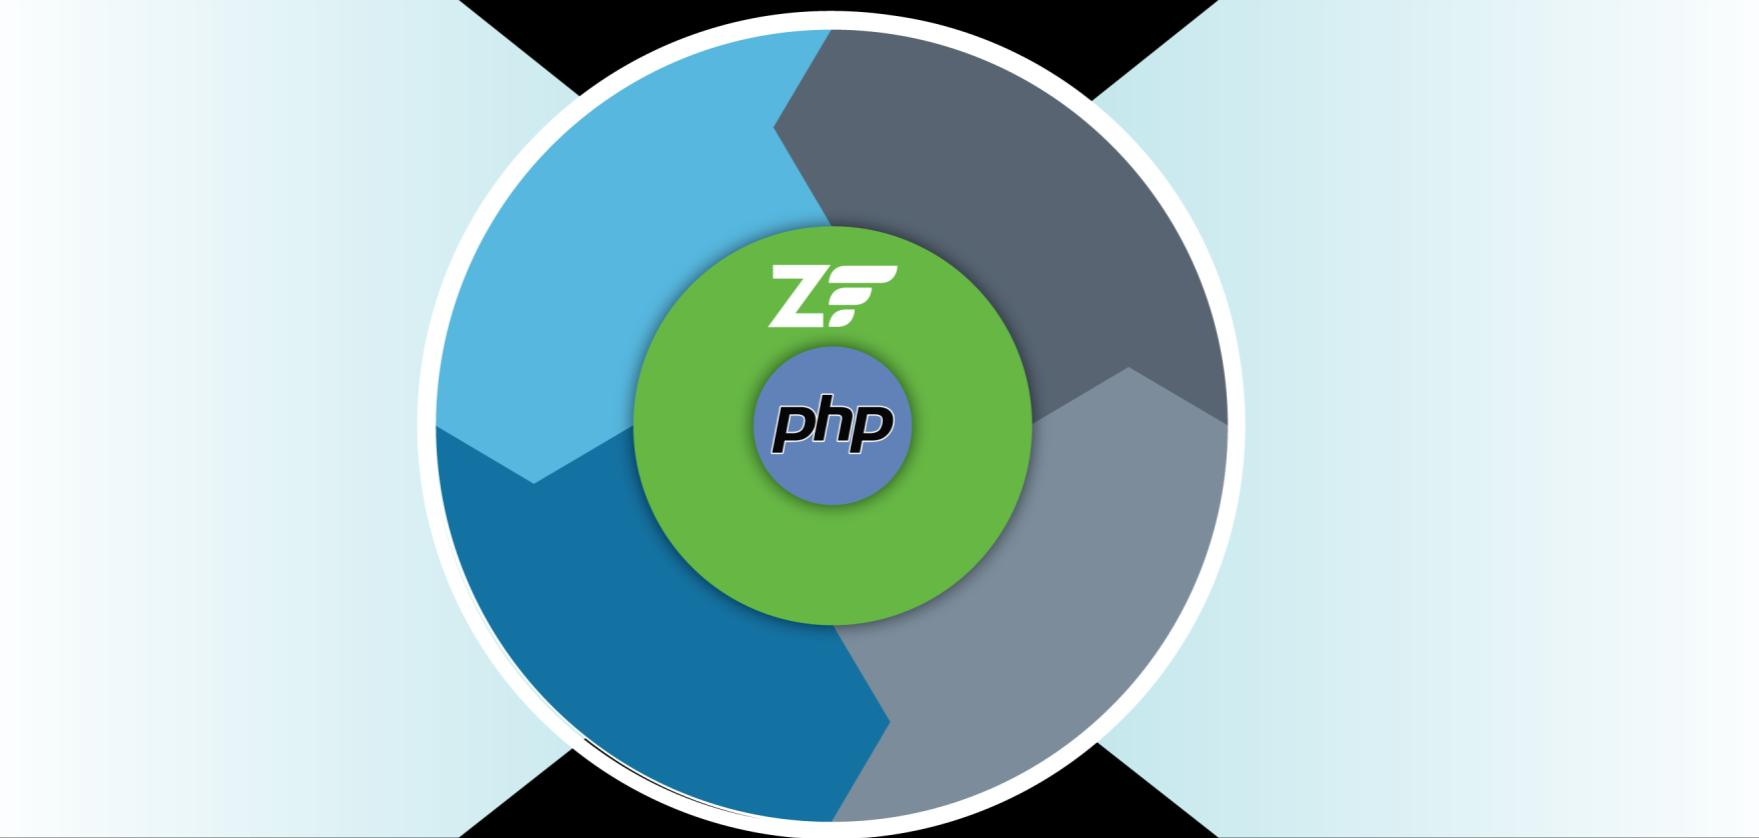 Zend products for the